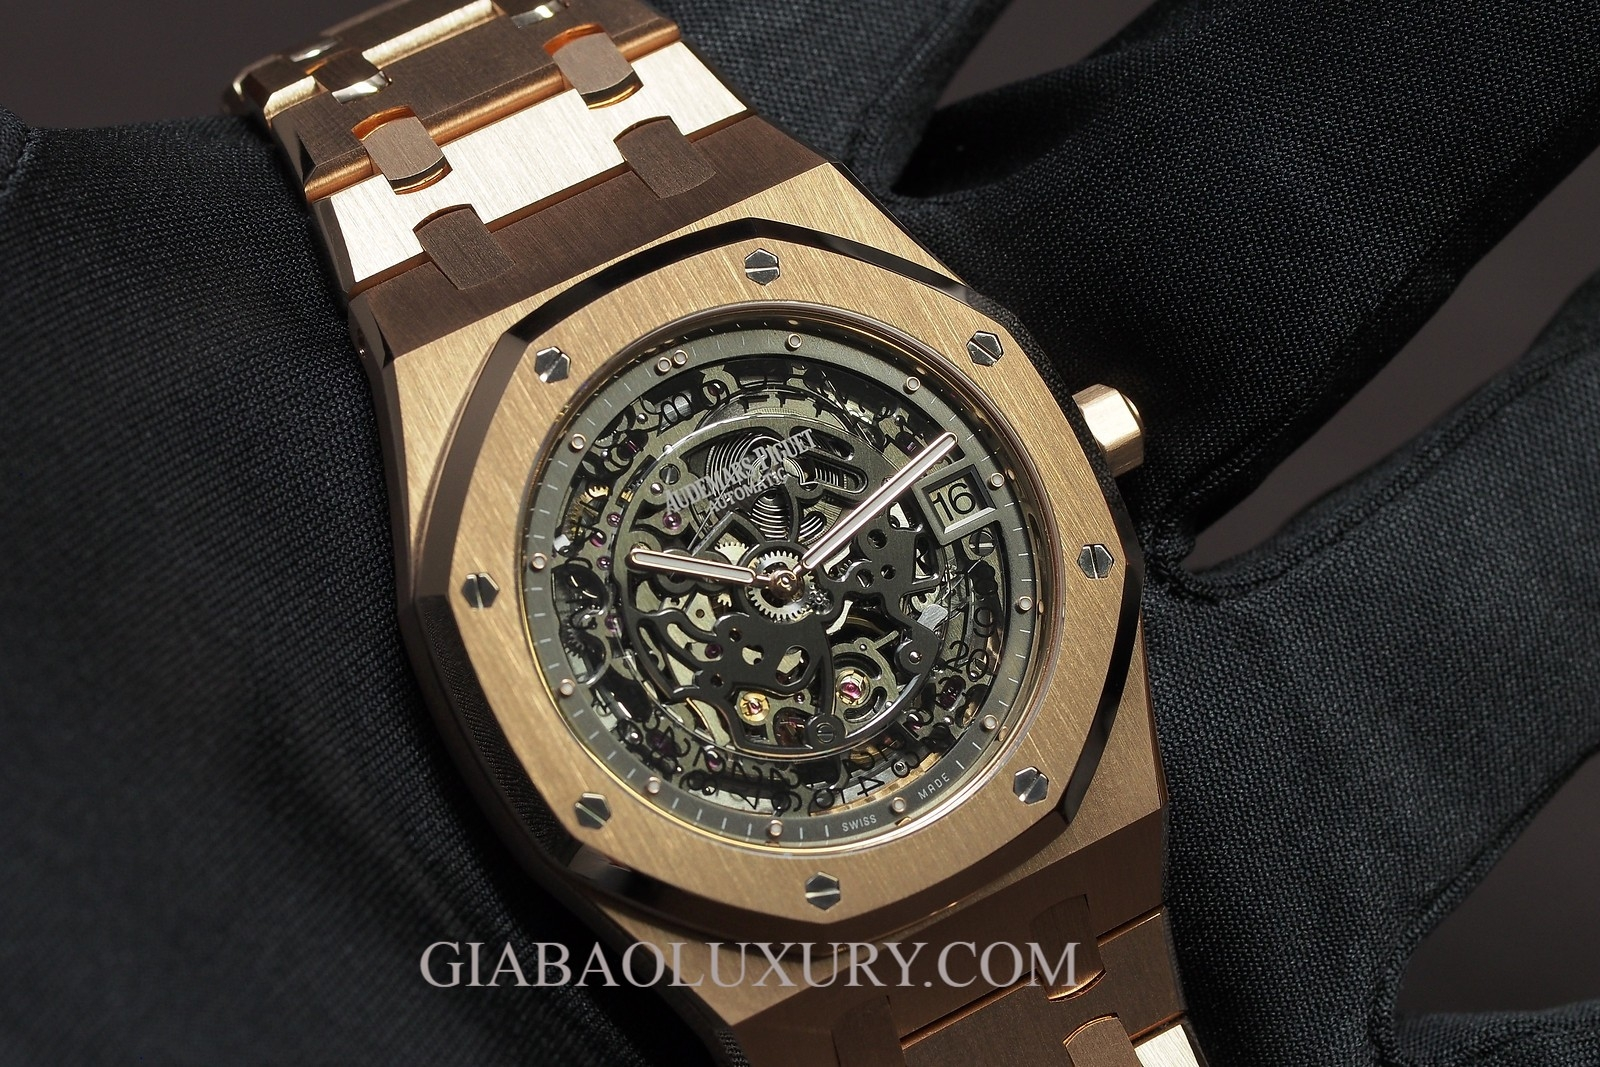 Đồng hồ Audemars Piguet Royal Oak Openworked Extra- Thin Skeleton 15204OR.OO.1240OR.01